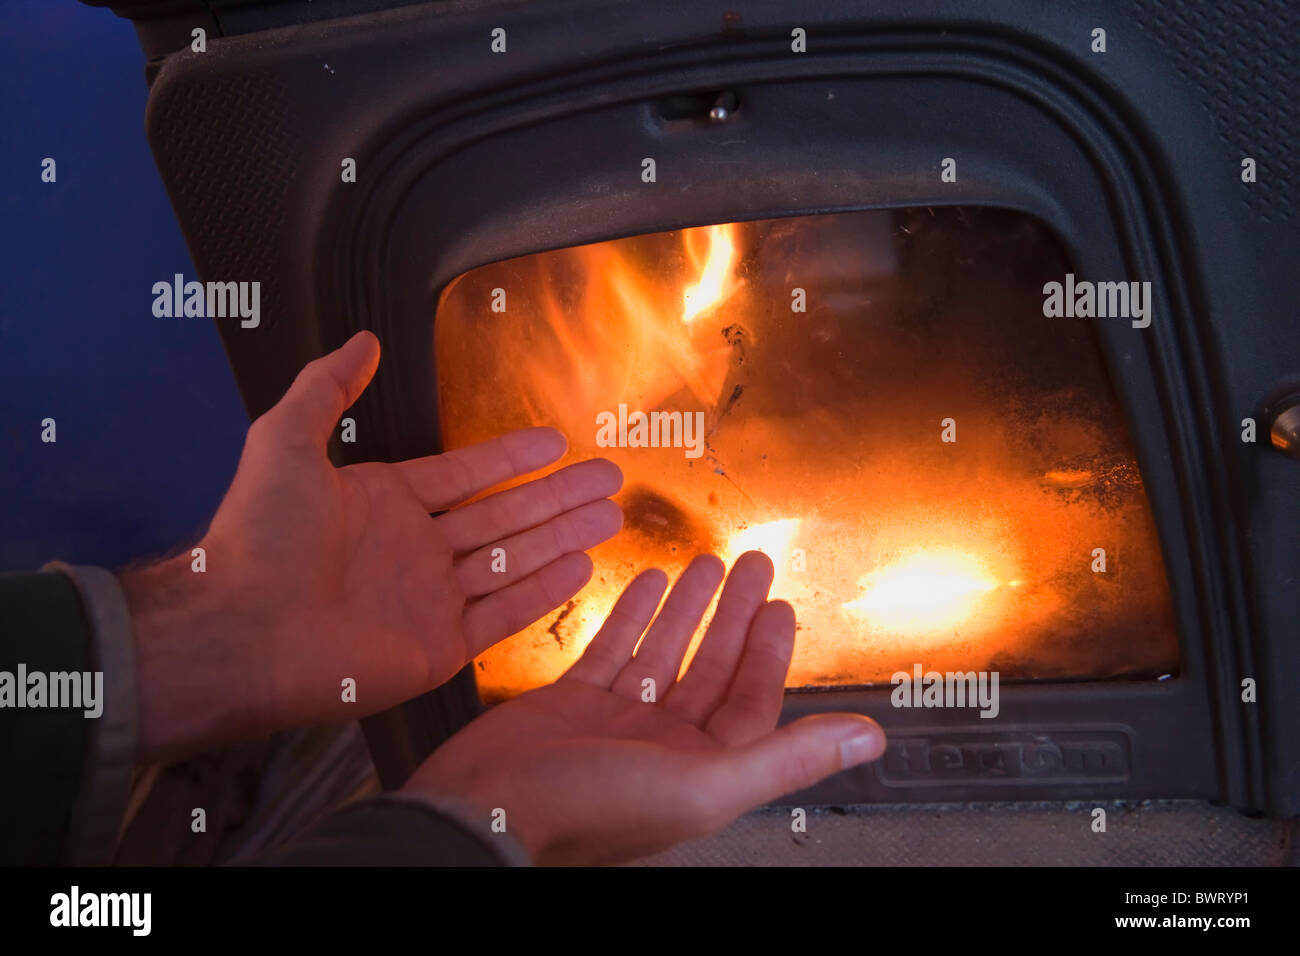 Hands being warmed in front of wood burning stove - Stock Image